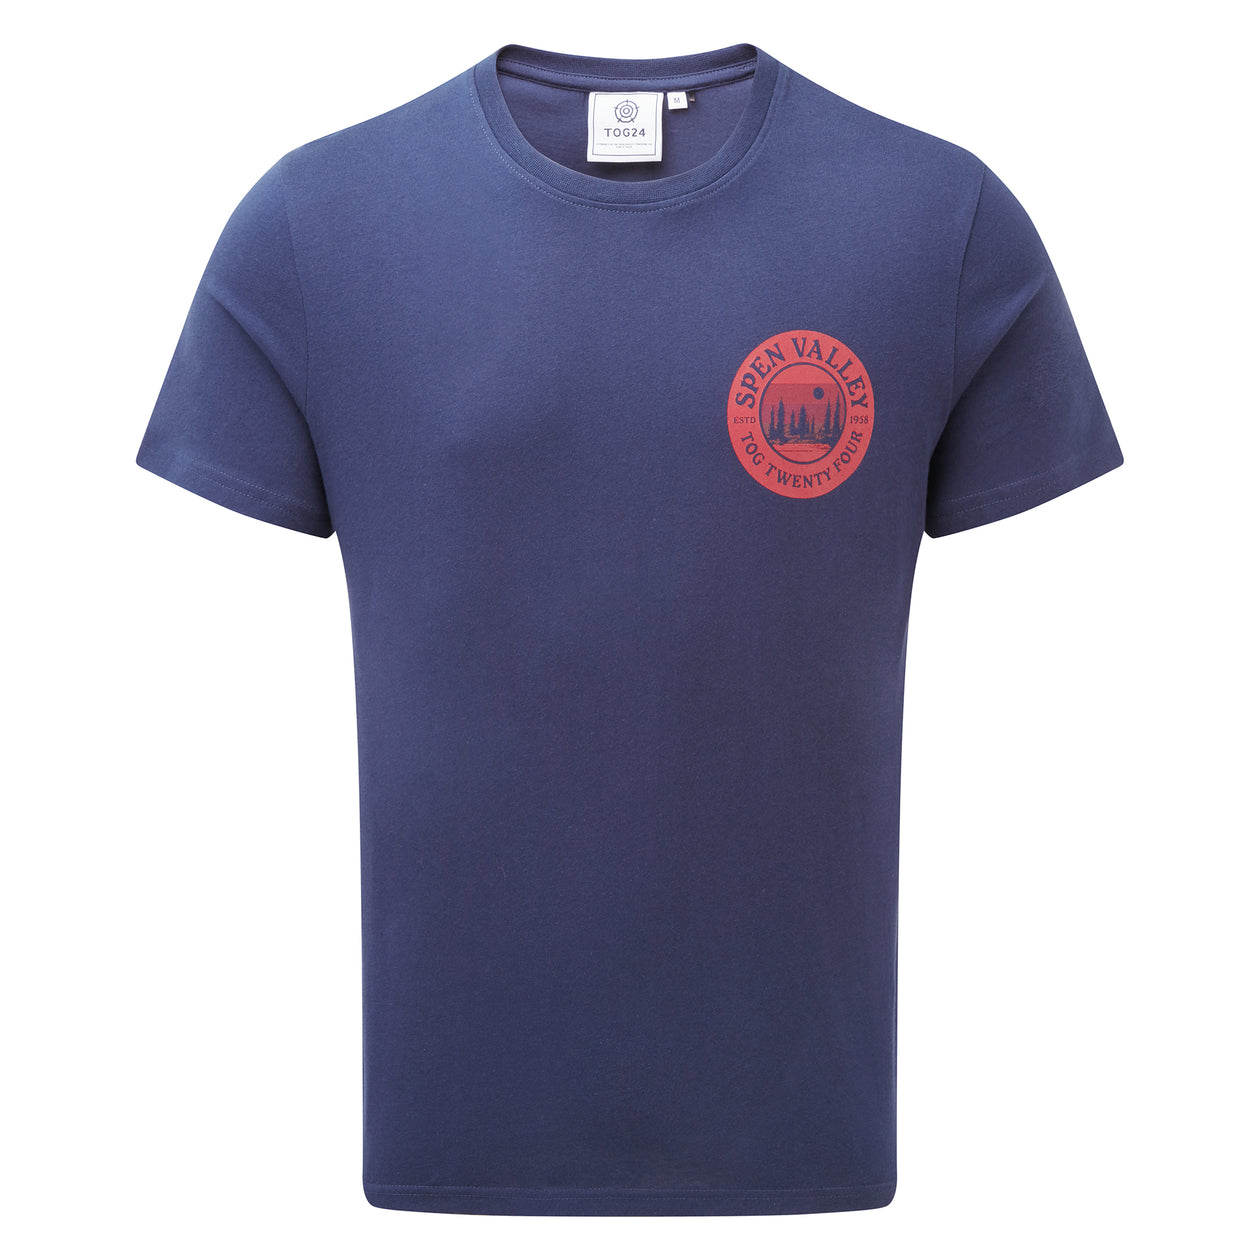 Malton Mens Graphic T-Shirt Spen - Naval Blue image 4